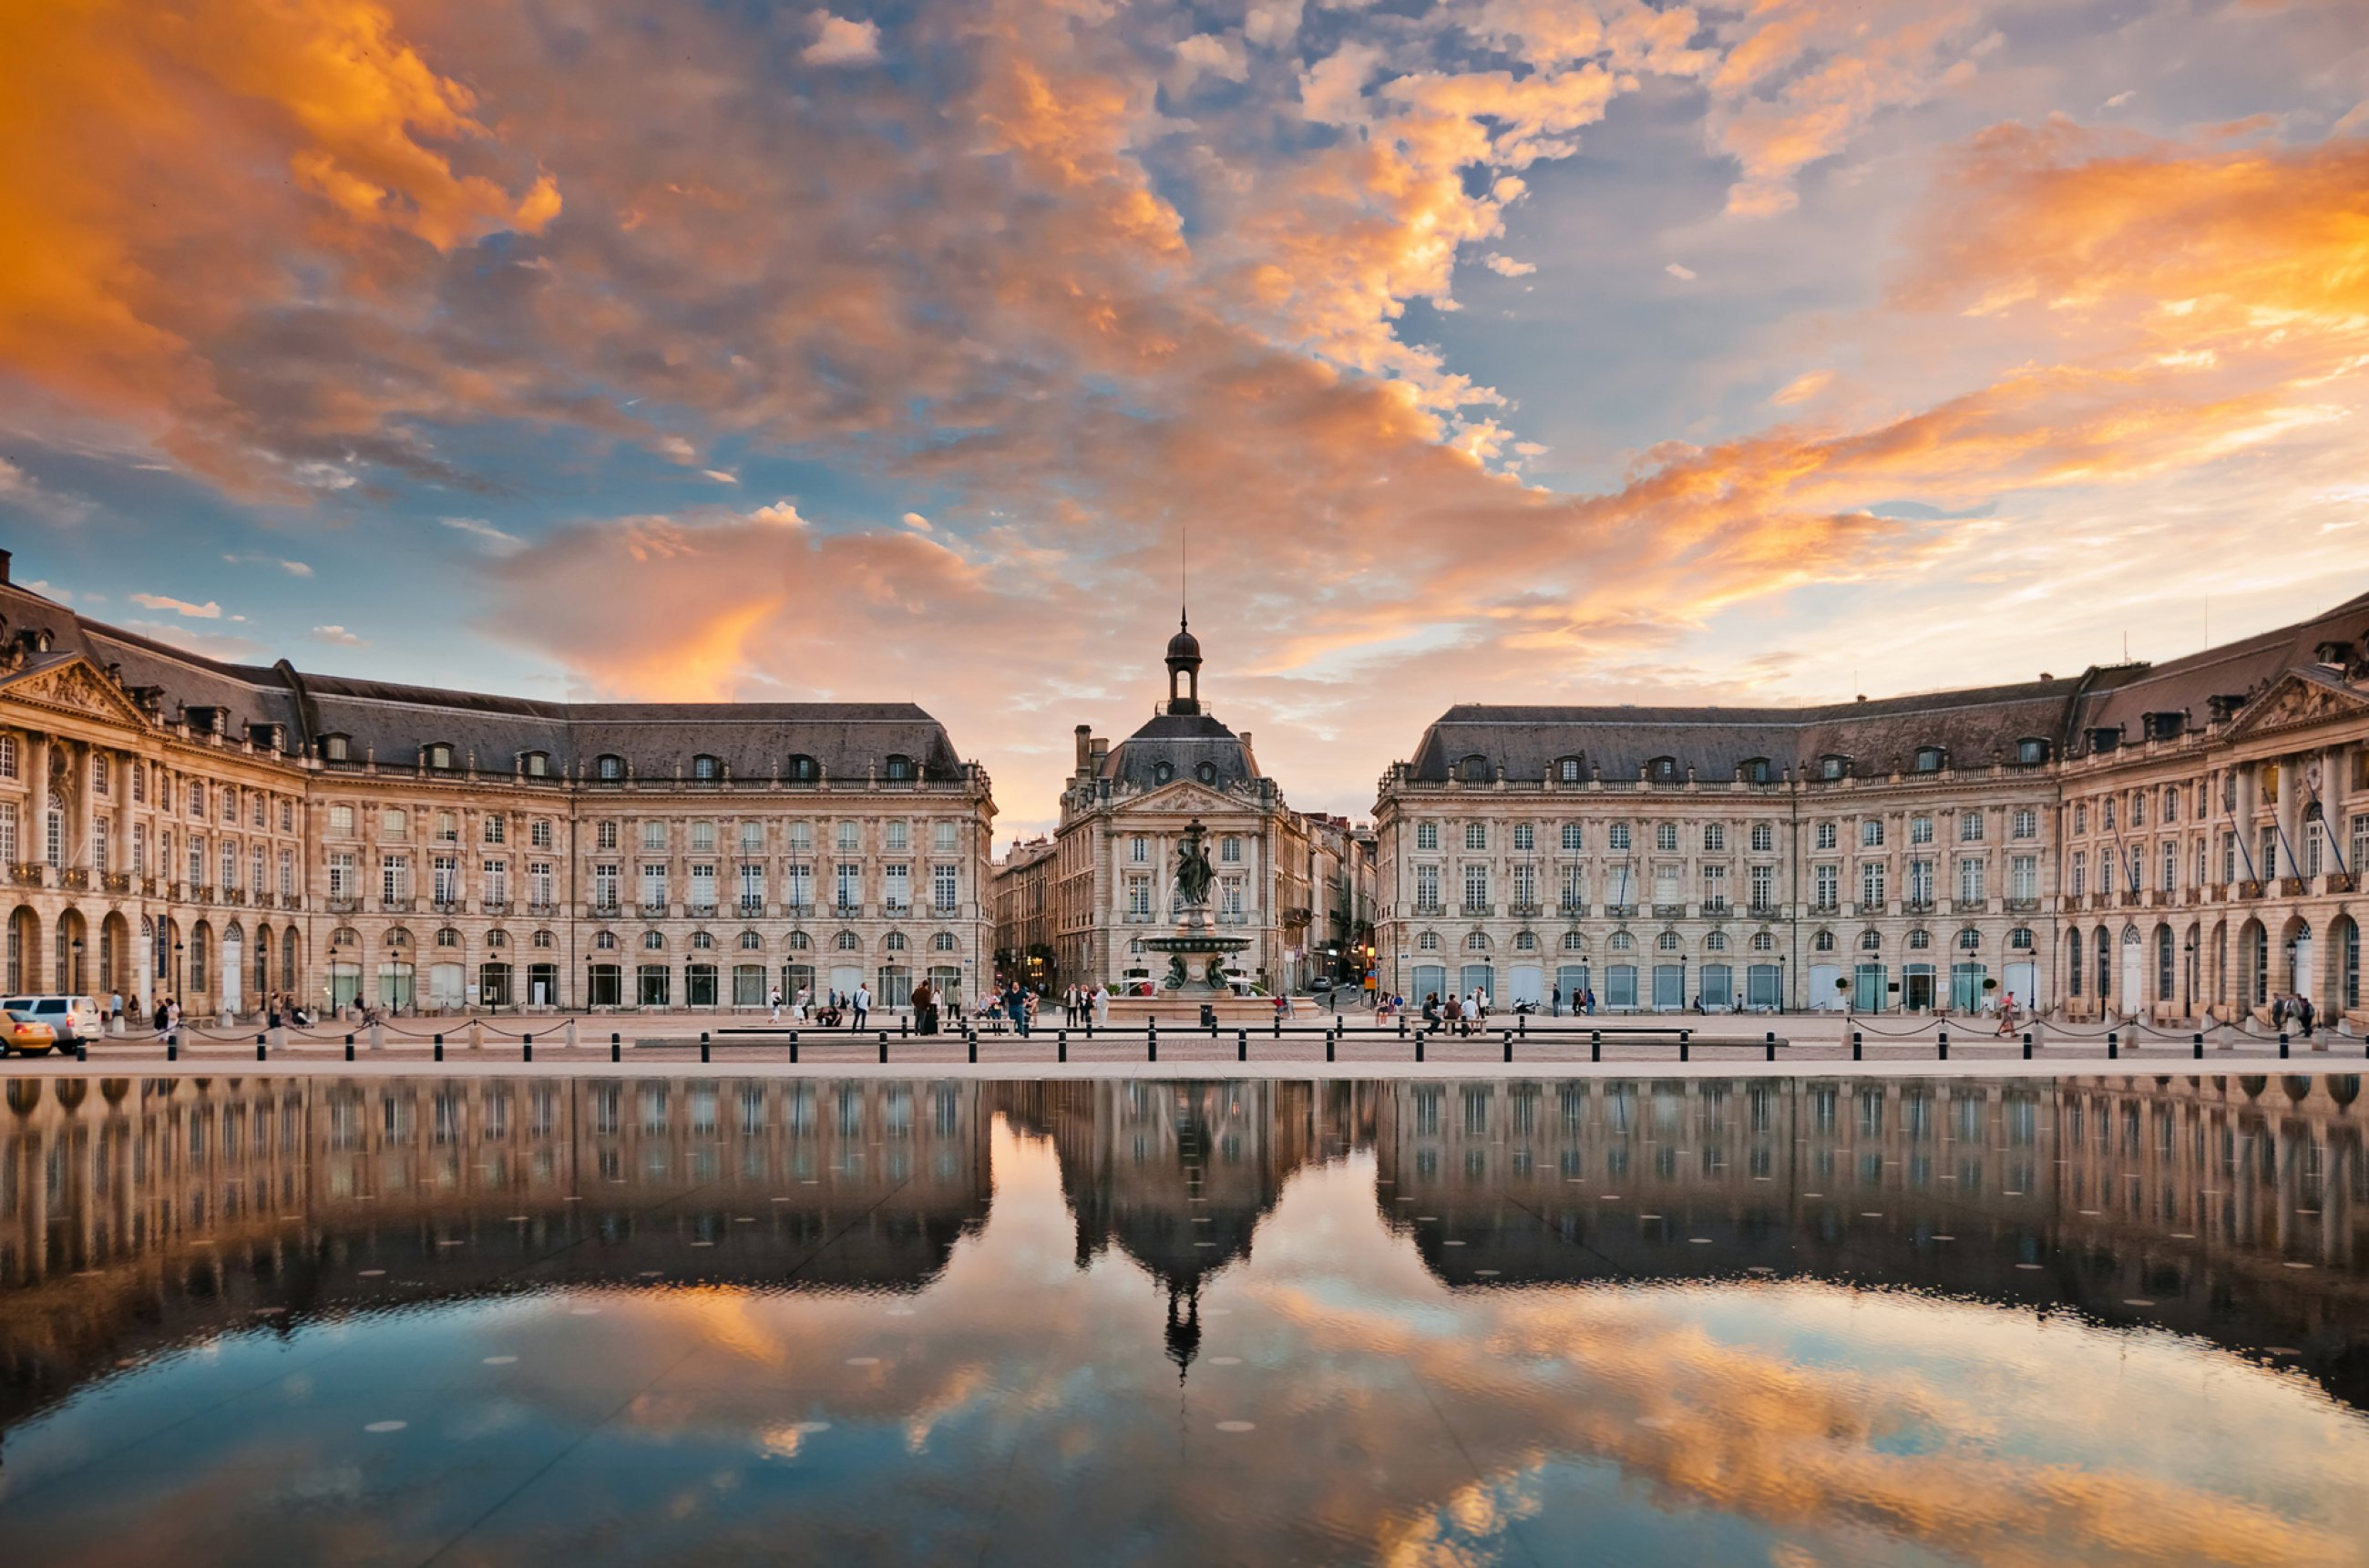 https://bubo.sk/uploads/galleries/5049/francuzsko-place-de-la-bourse-in-bordeaux.jpg